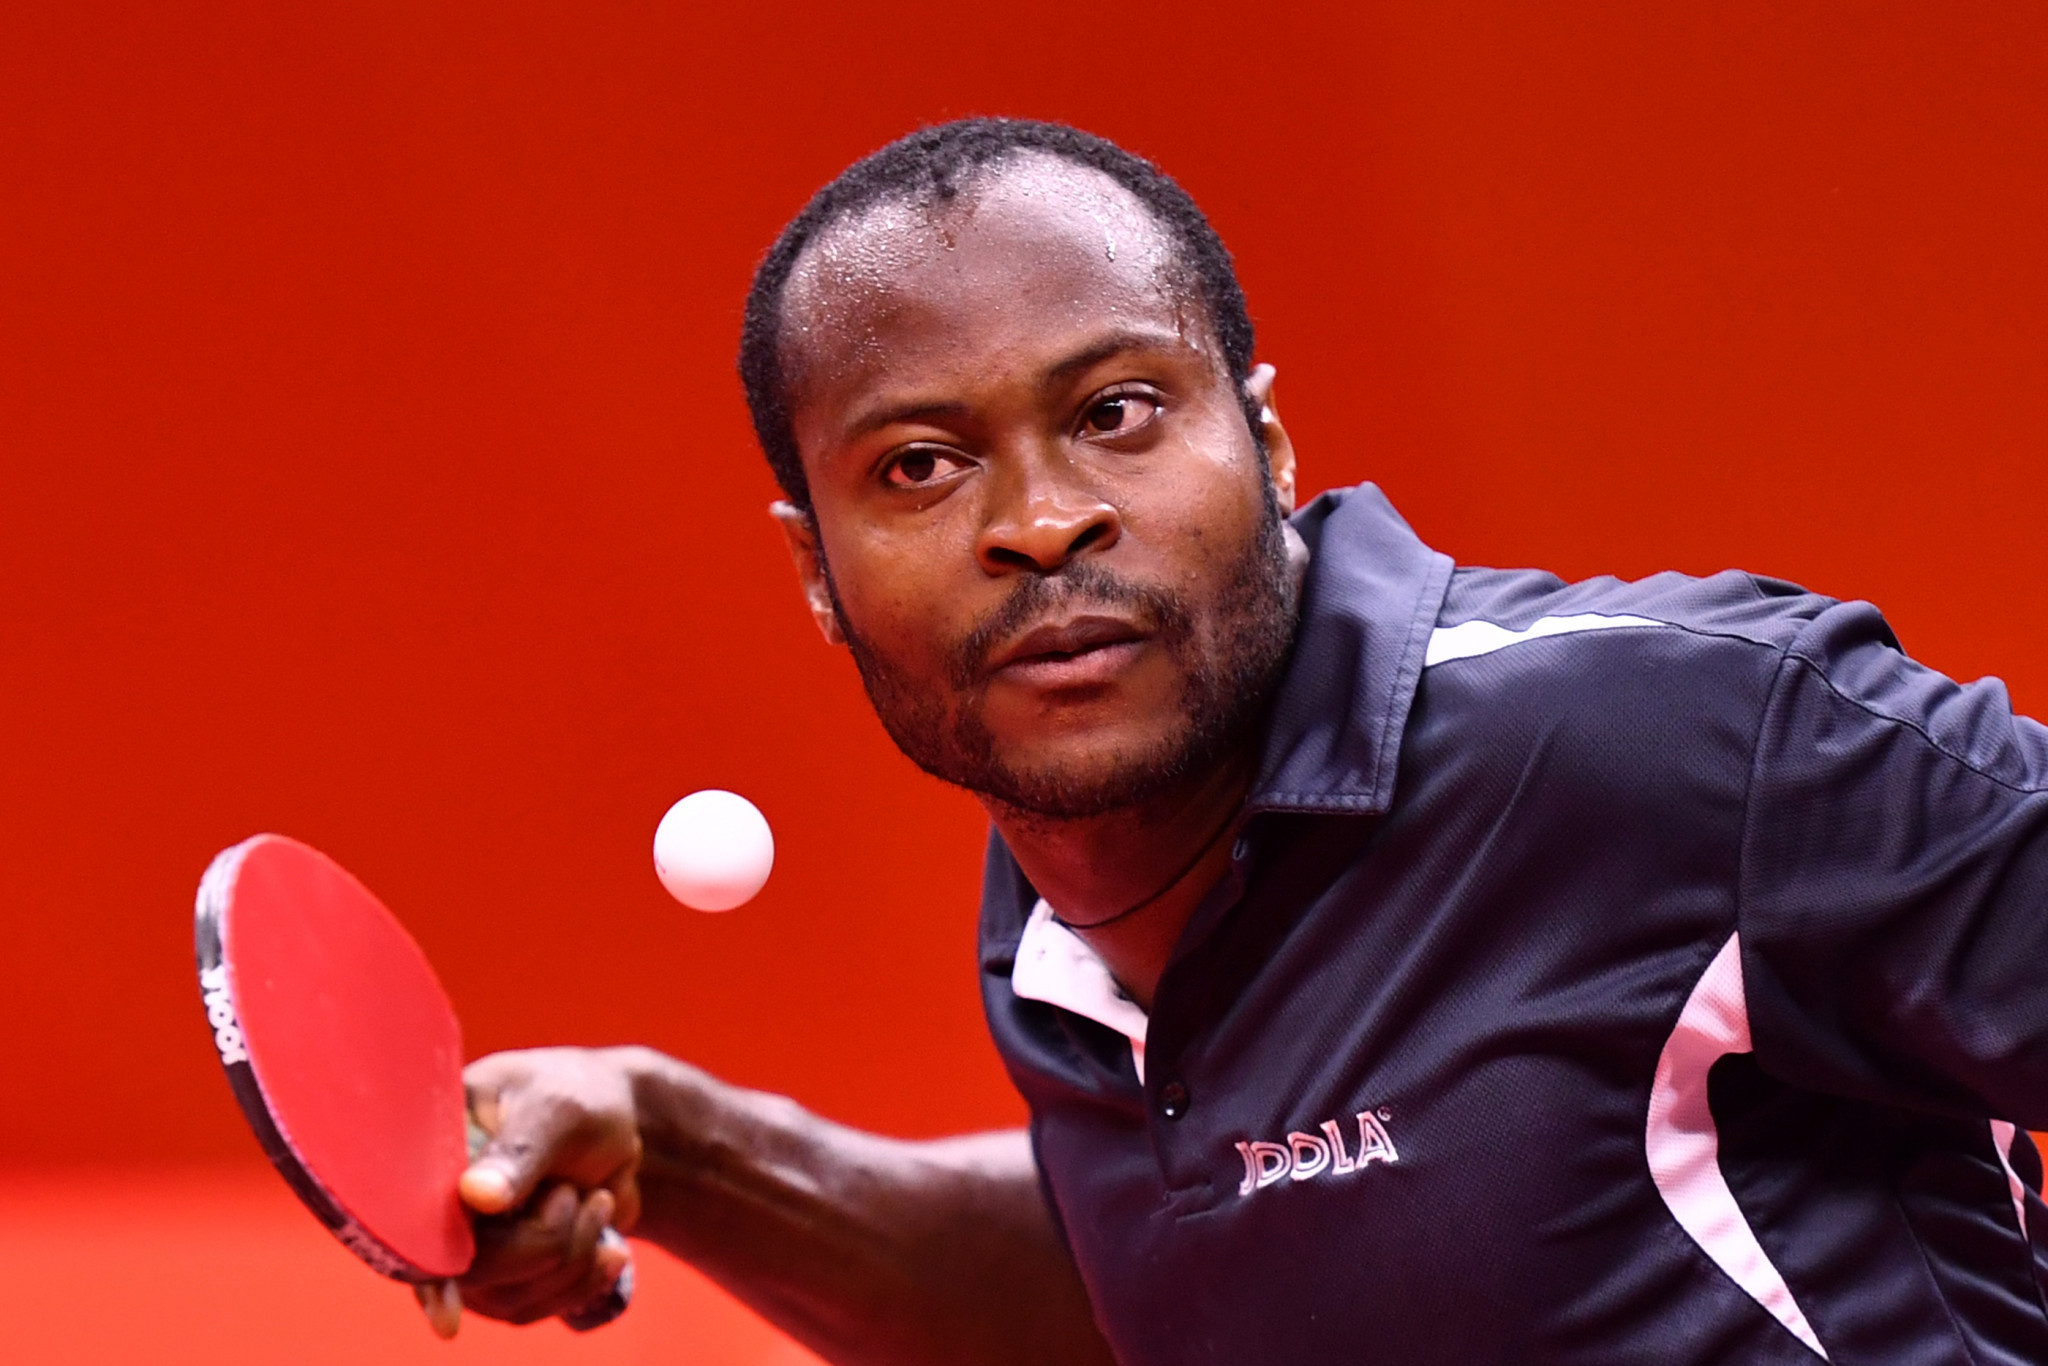 Quadri Aruna is among the players set to represent Nigeria at the 2019 African Games ©Getty Images